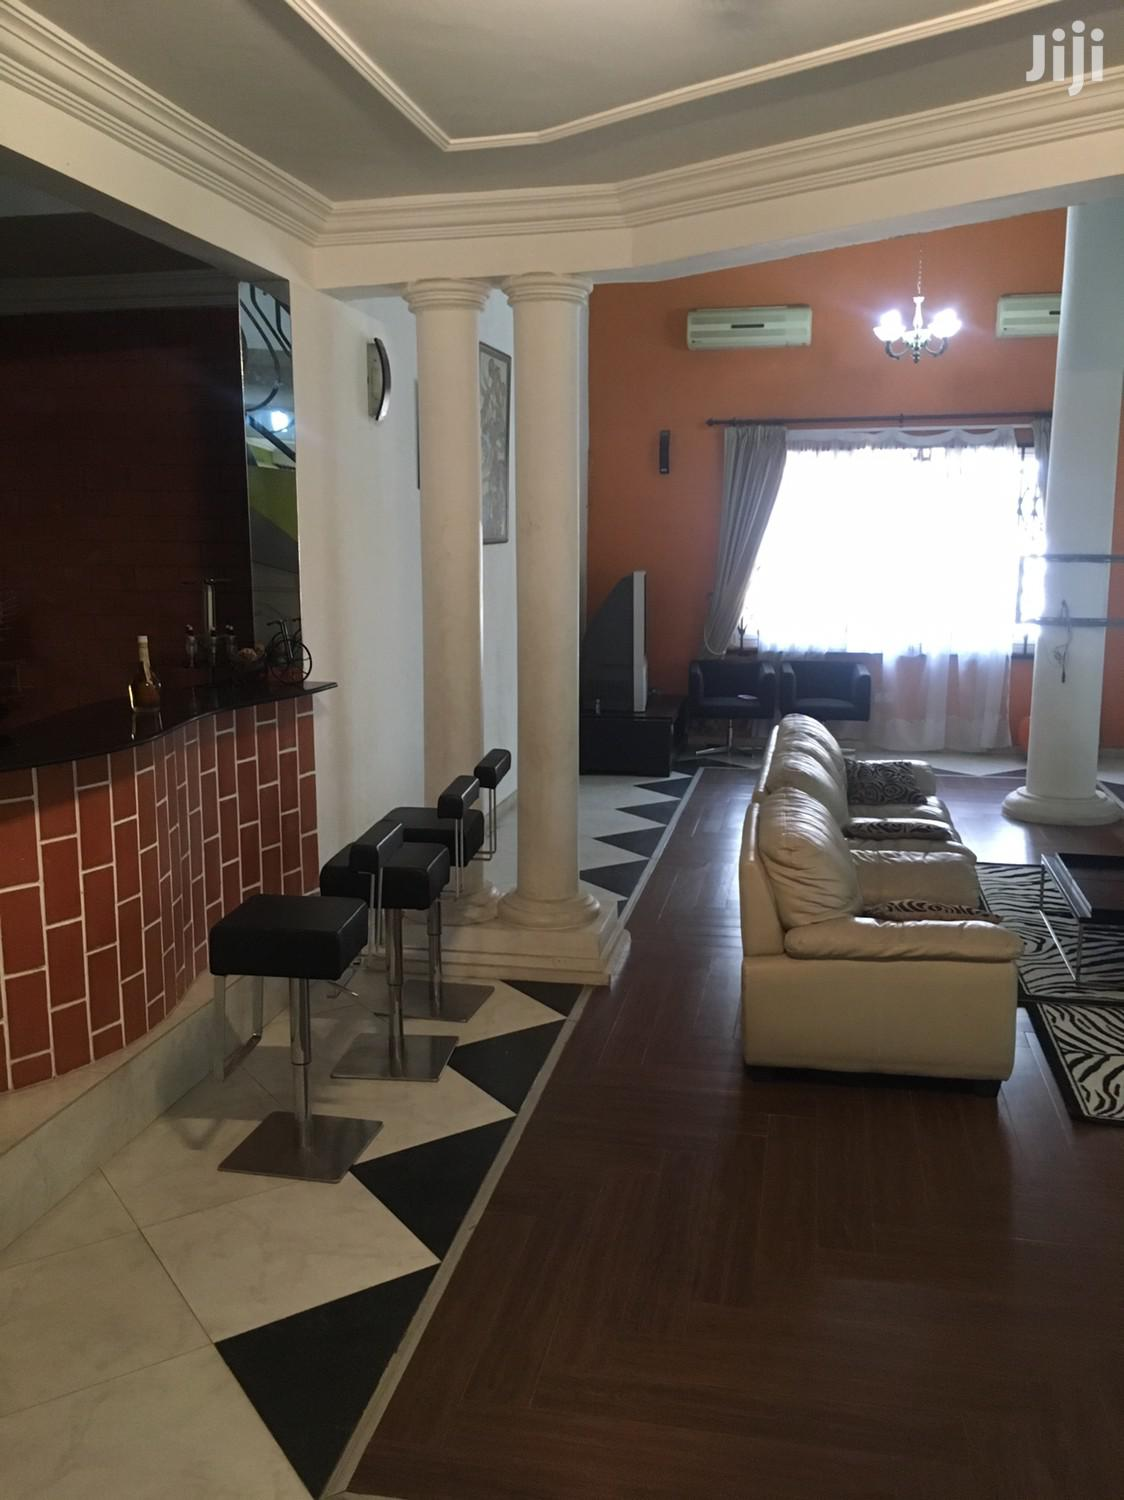 Archive: 6 Executive Bedrooms for Sale at Dansoman Ssnit Flat